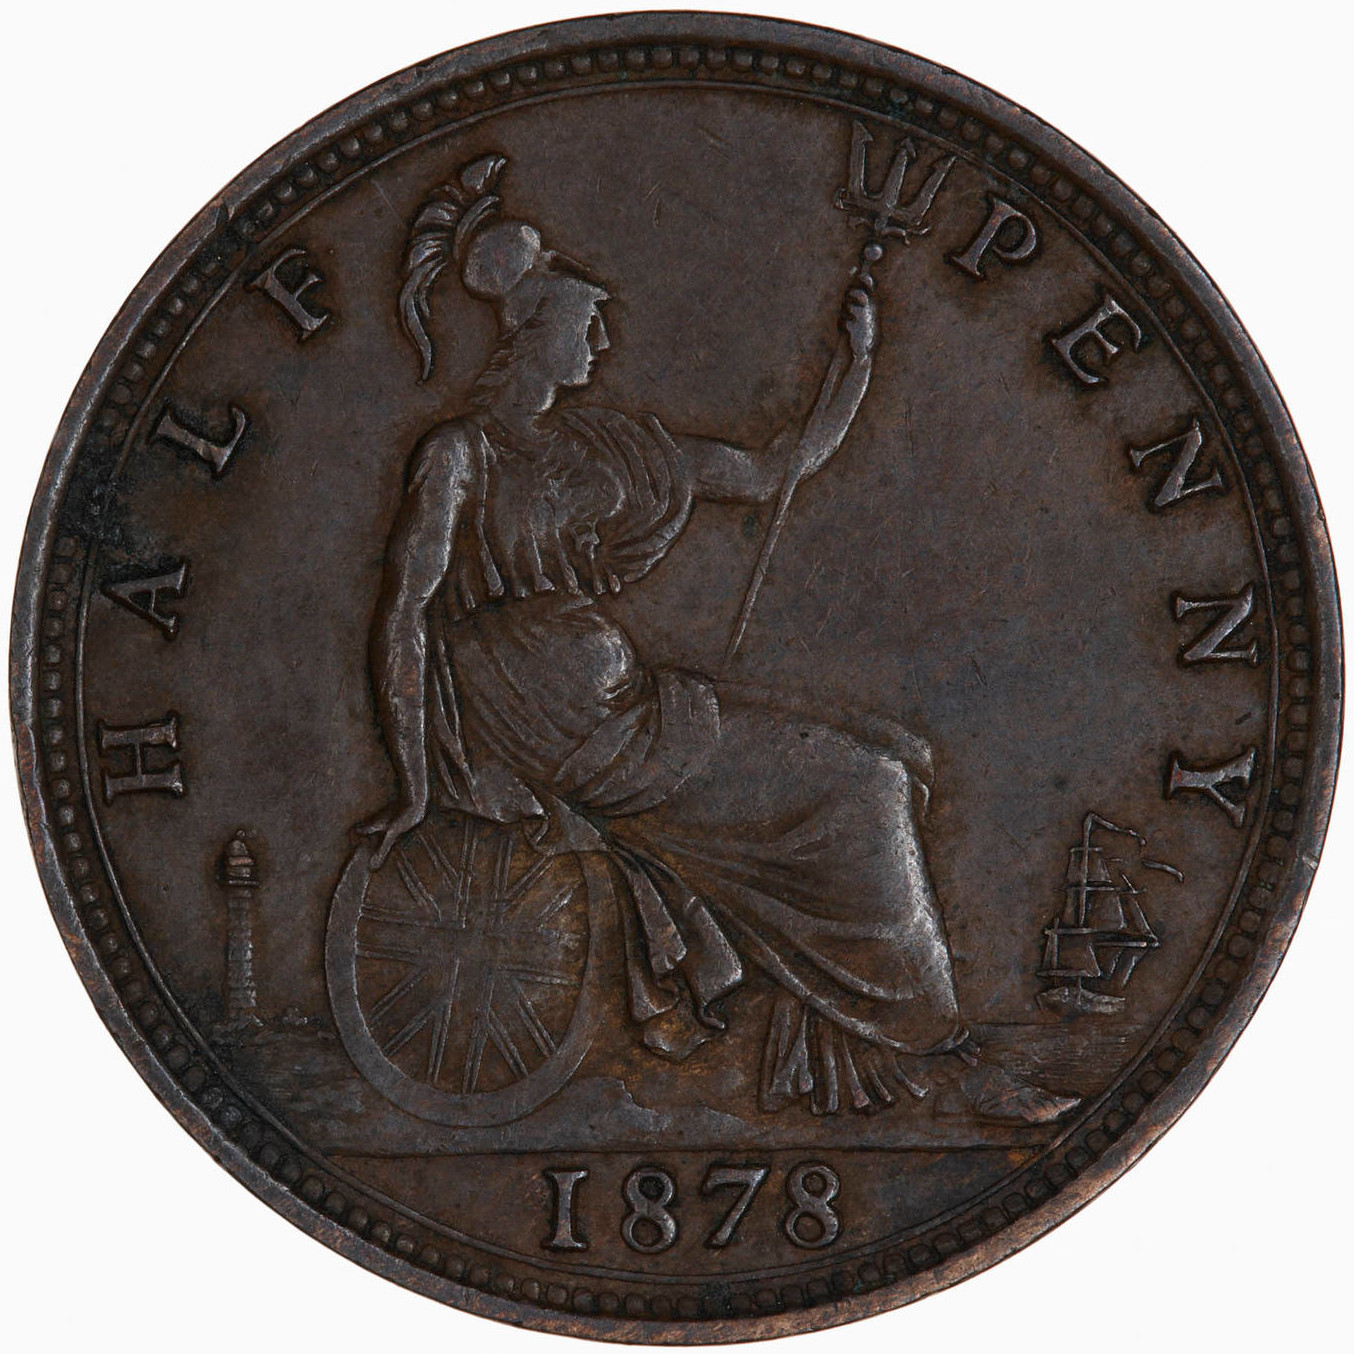 Halfpenny 1878: Photo Coin - Halfpenny, Queen Victoria, Great Britain, 1878